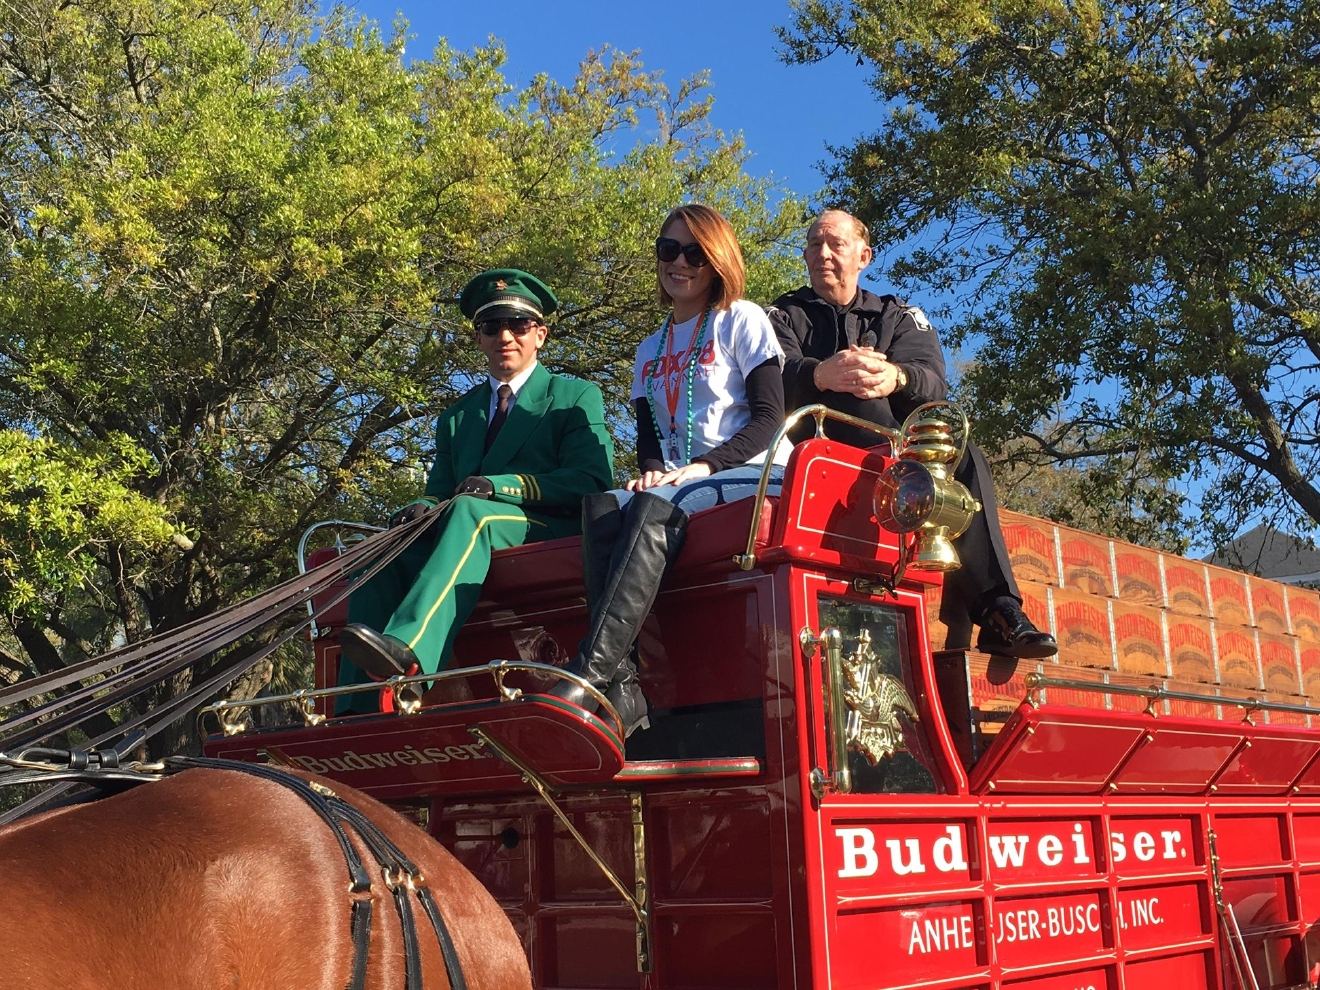 Erin Thomas hitched a ride with the Budweiser Clydesdales (Credit: Ian Dembling)